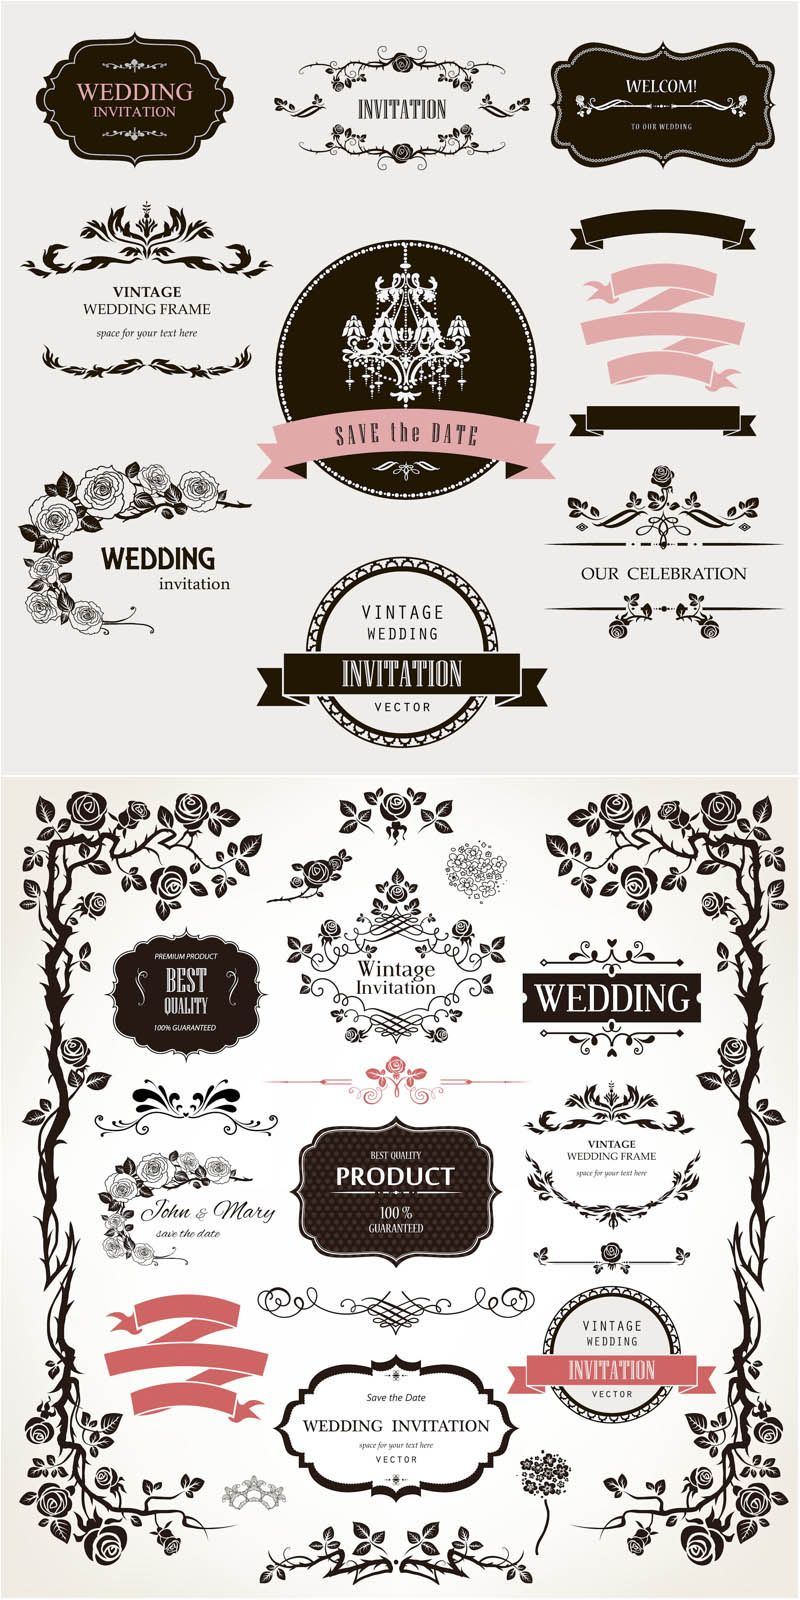 Decorative floral wedding design elements vector  Design elements